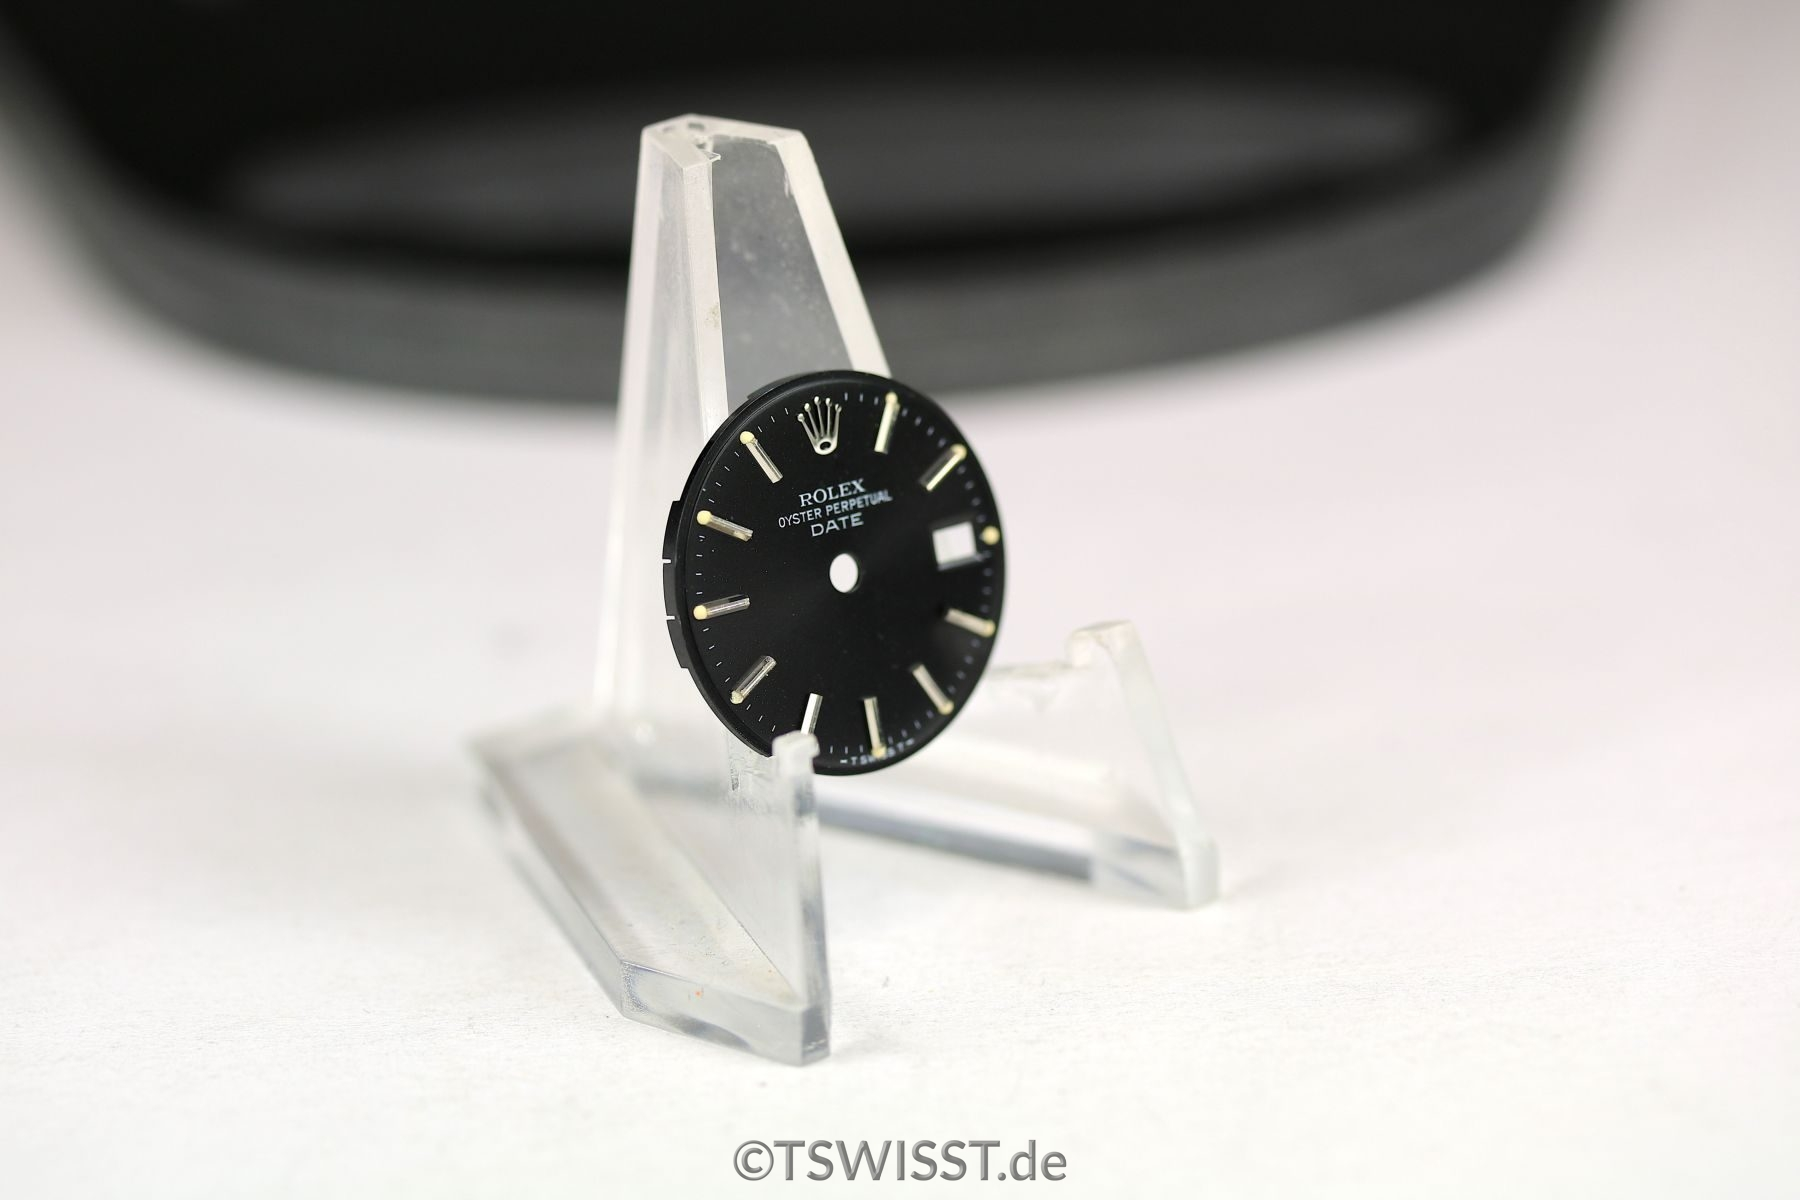 Rolex Oyster Perpetual Date dial